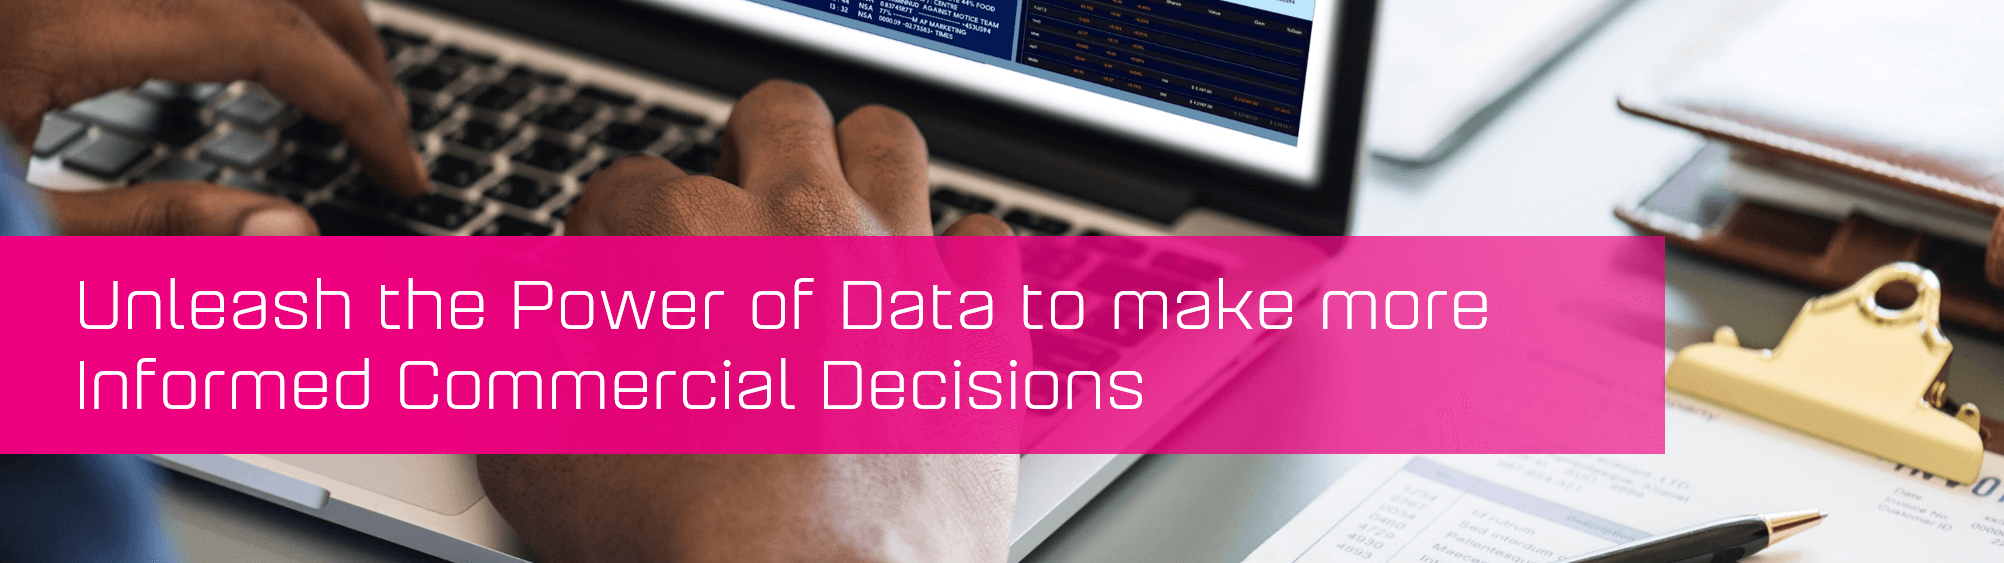 KKCS SA - Blog - Unleash the power of data to more informed commercial decisions image 2